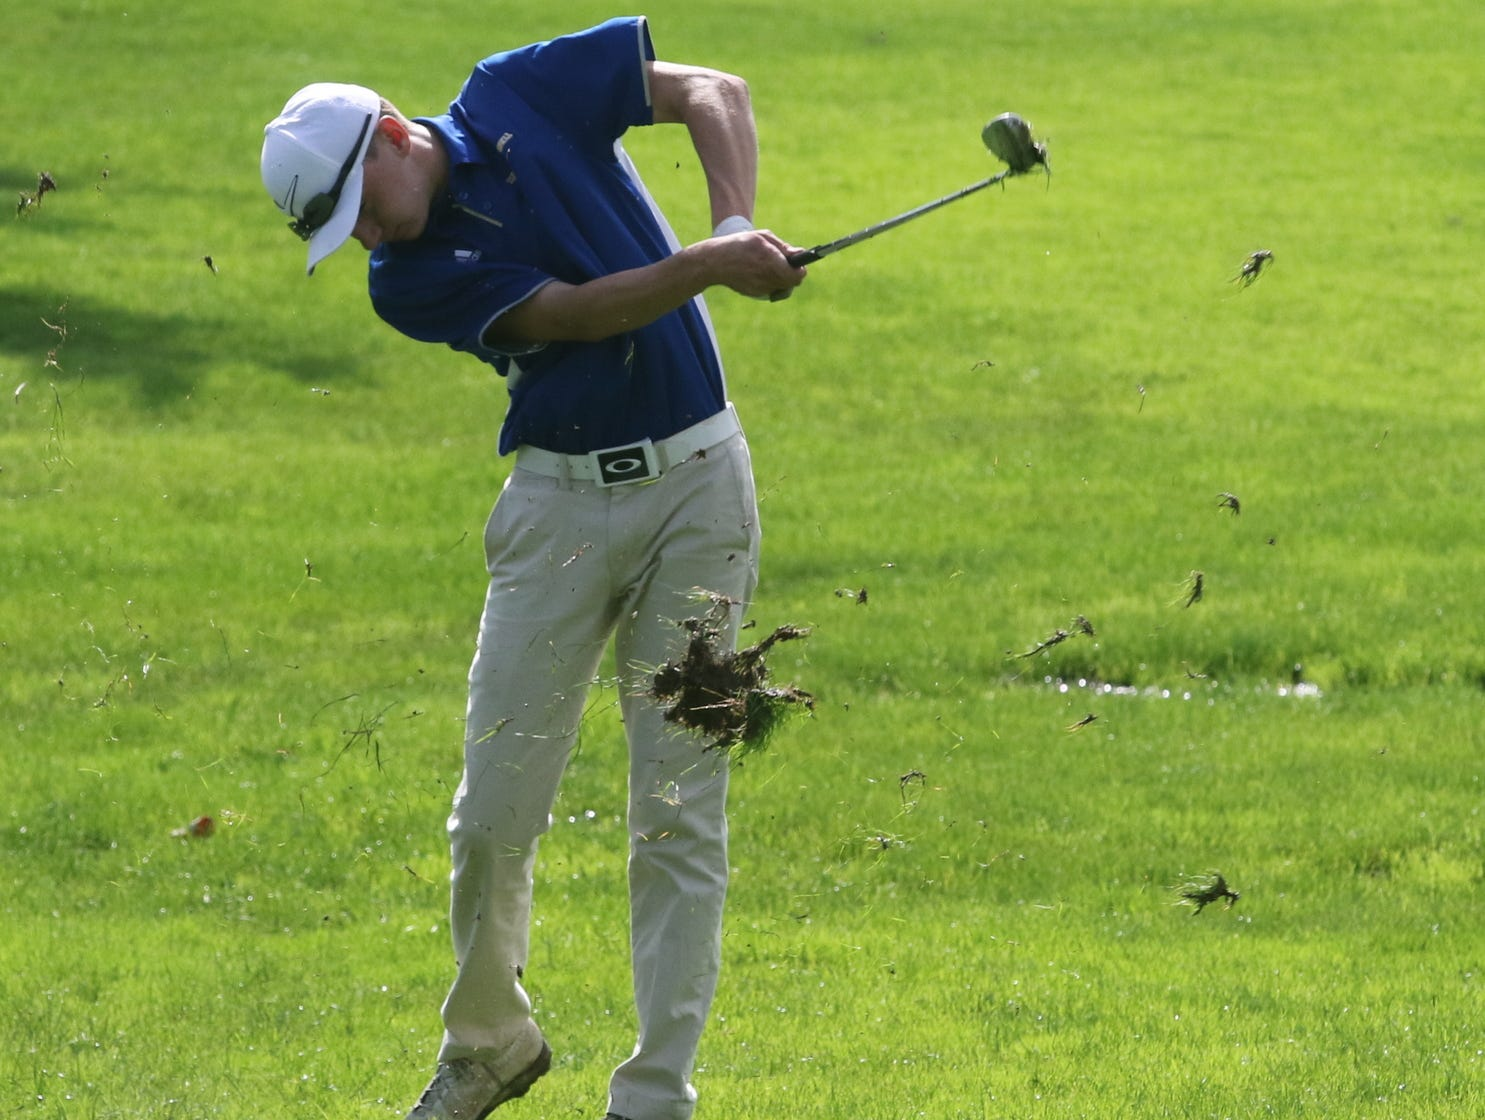 Action from the Southern Tier Athletic Conference golf championships Oct. 9, 2018 at Robert Trent Jones Golf Course in Ithaca.